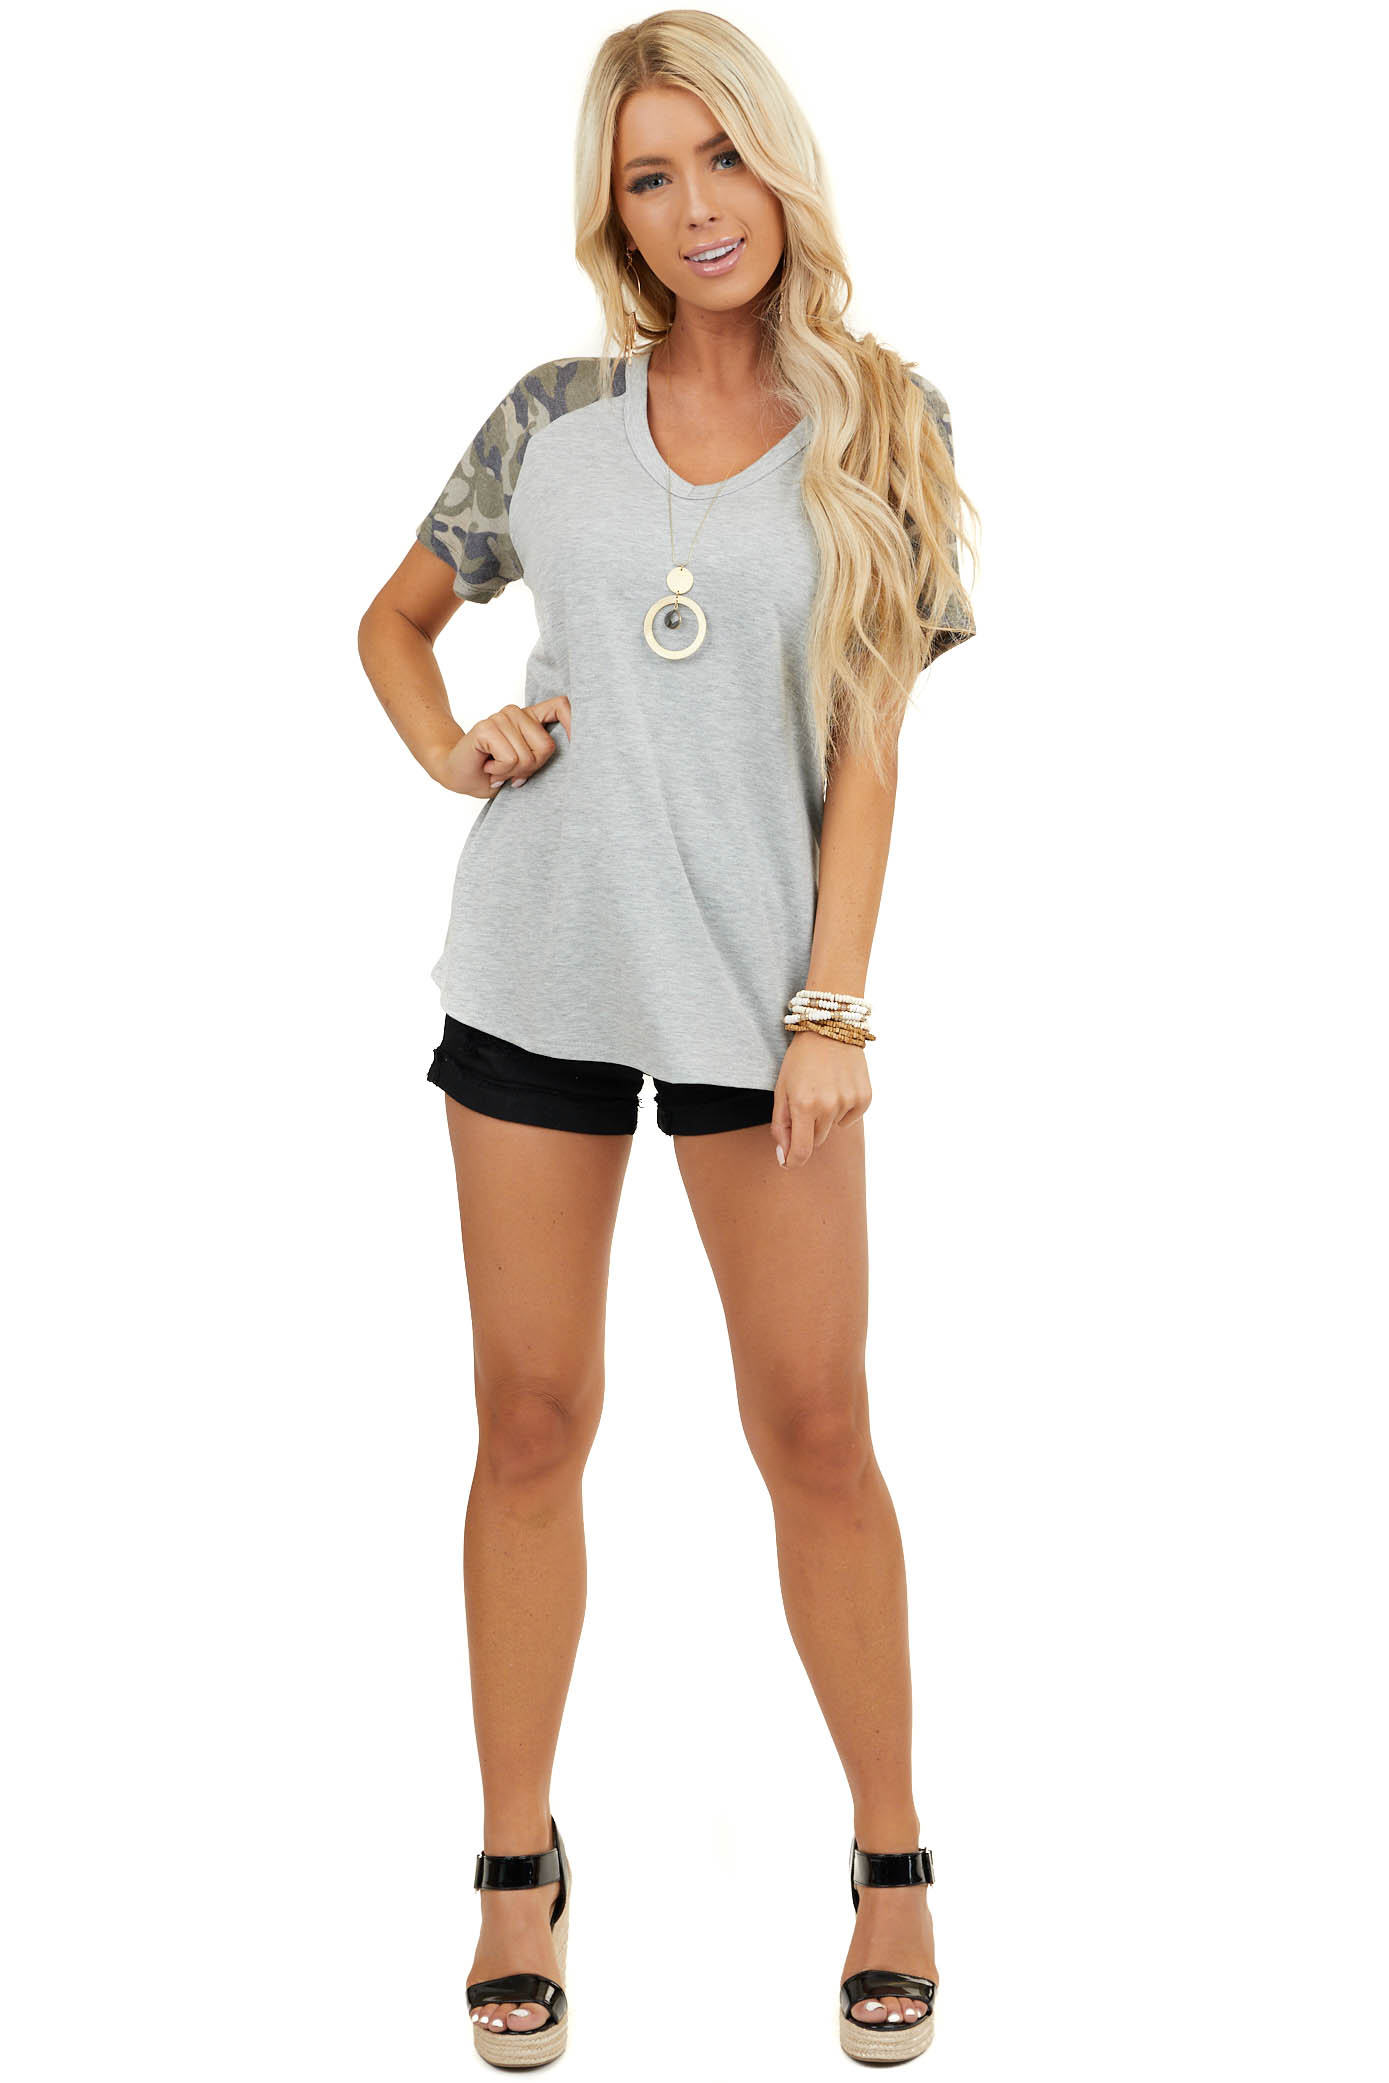 Heather Grey Baseball Tee with Camo Print Short Sleeves